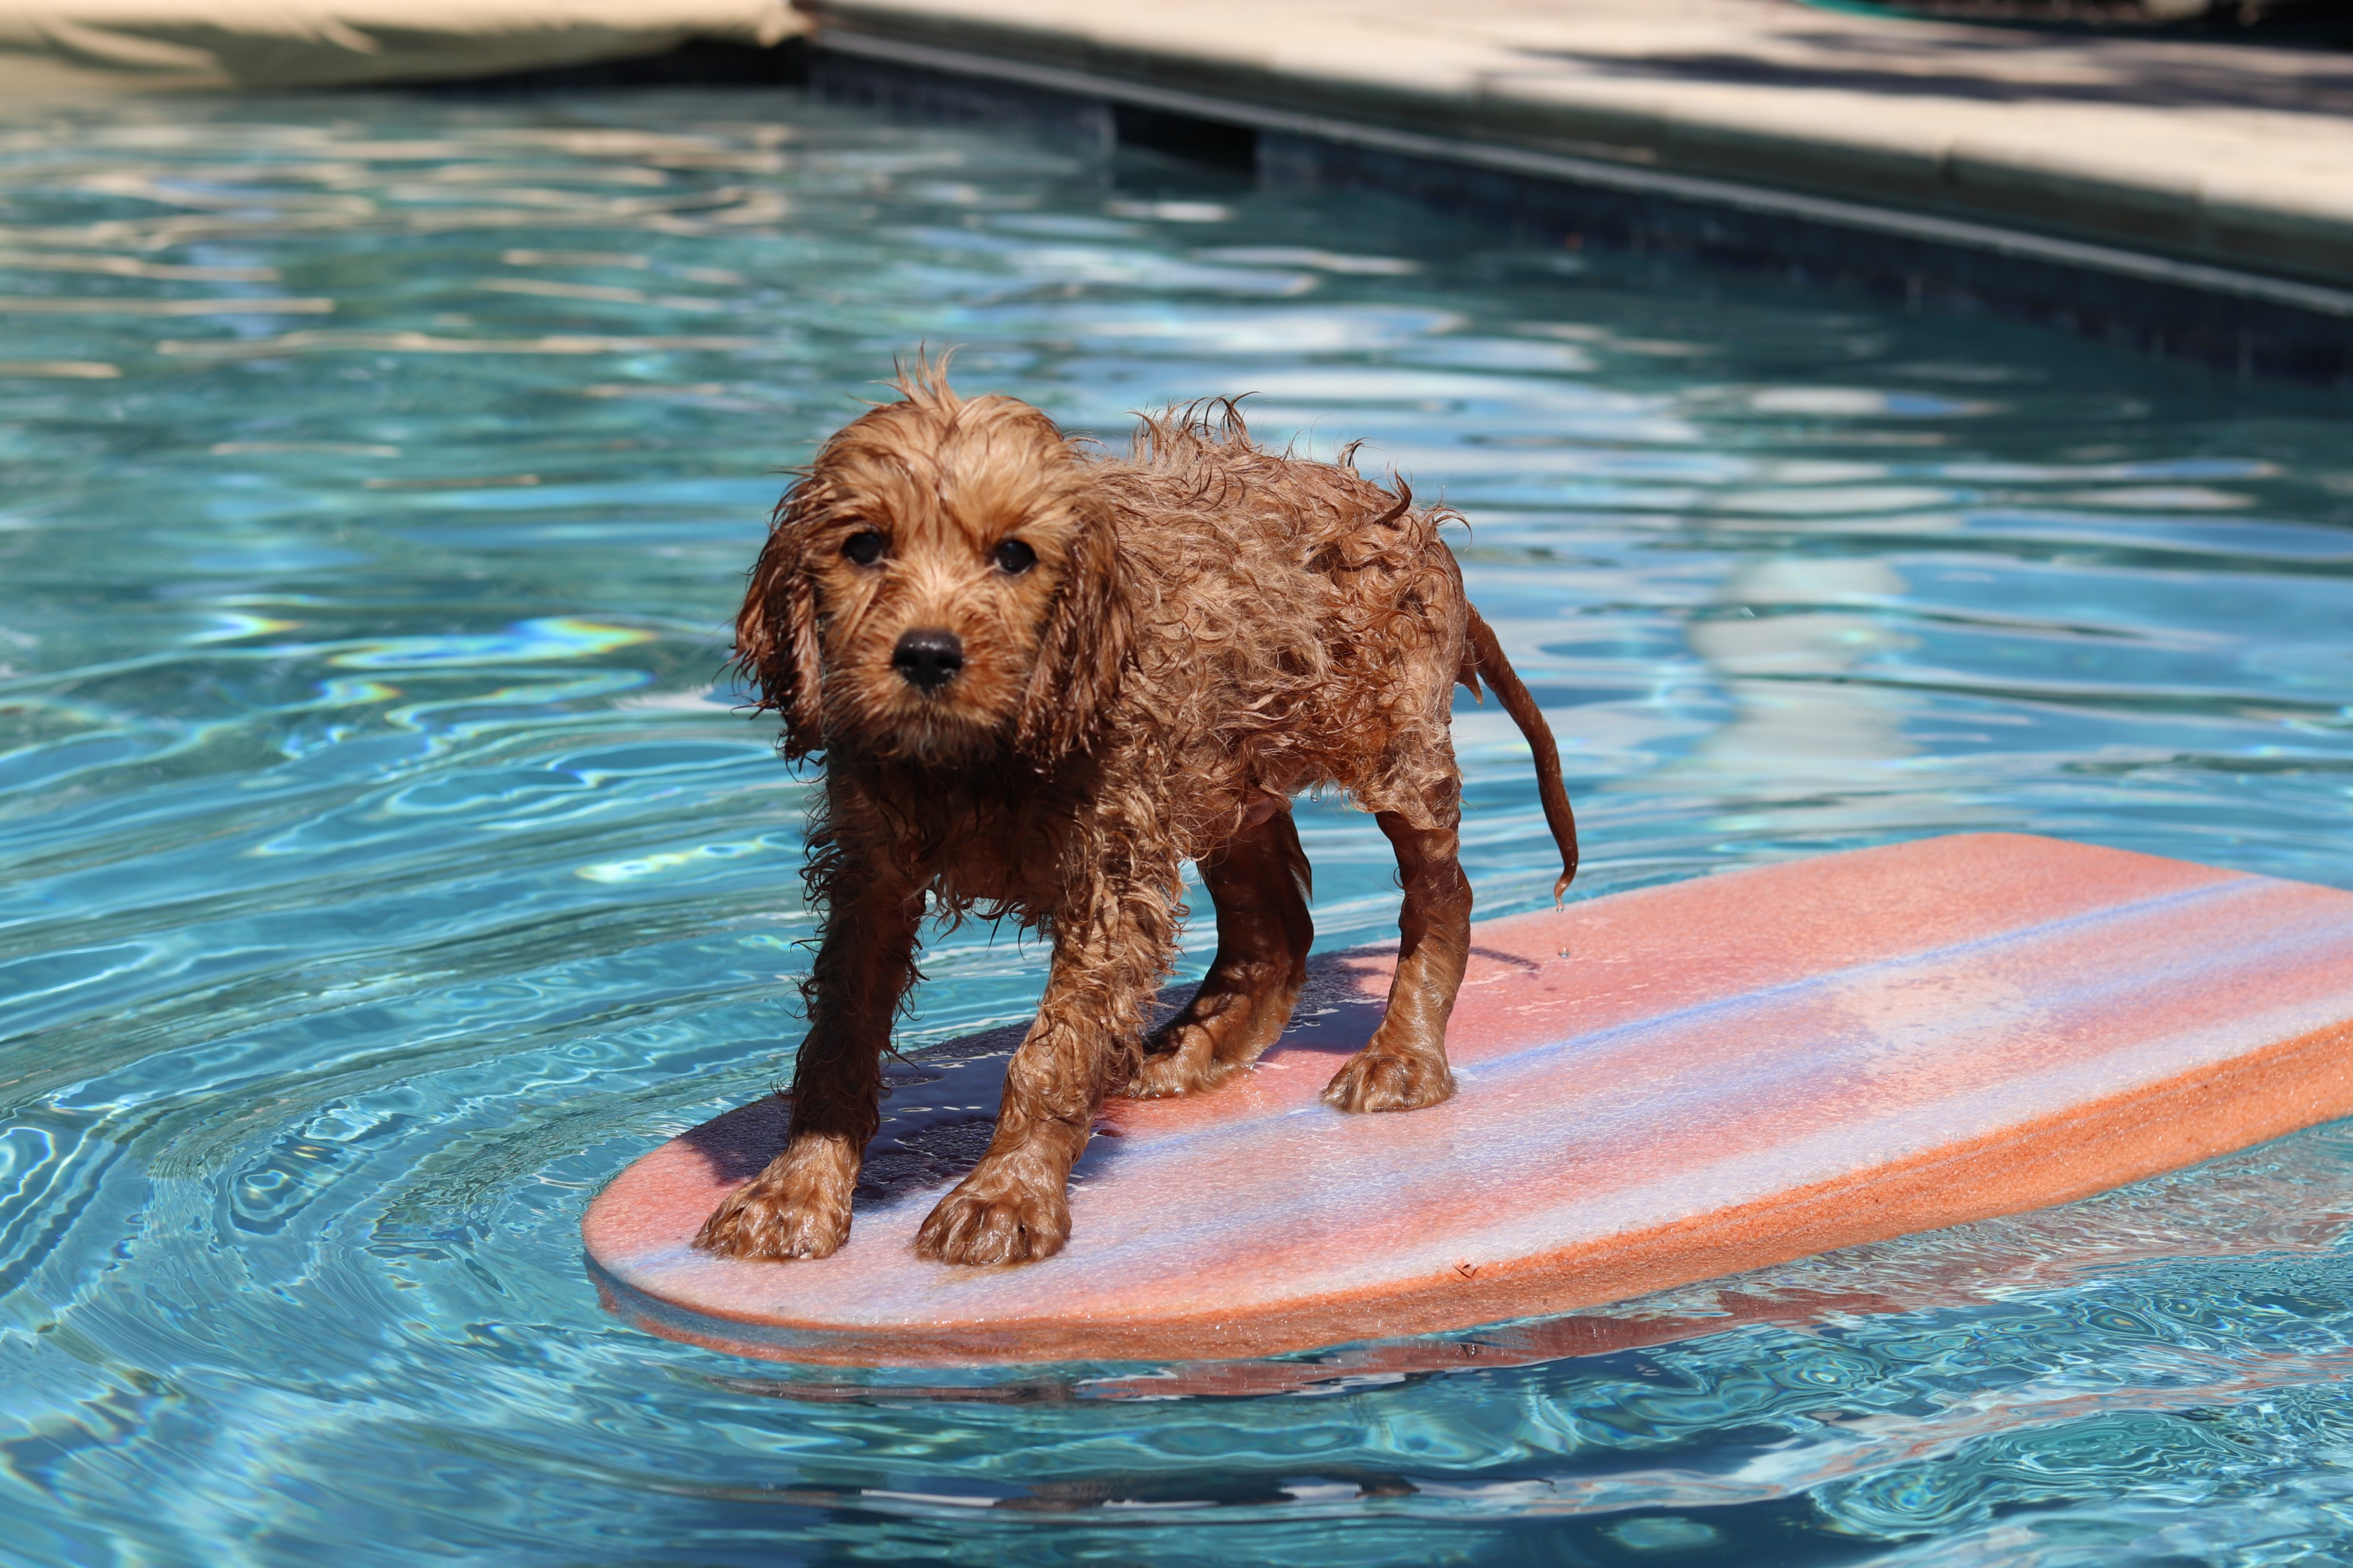 Small red puppy with soaking wet fur standing on a floaty in the pool